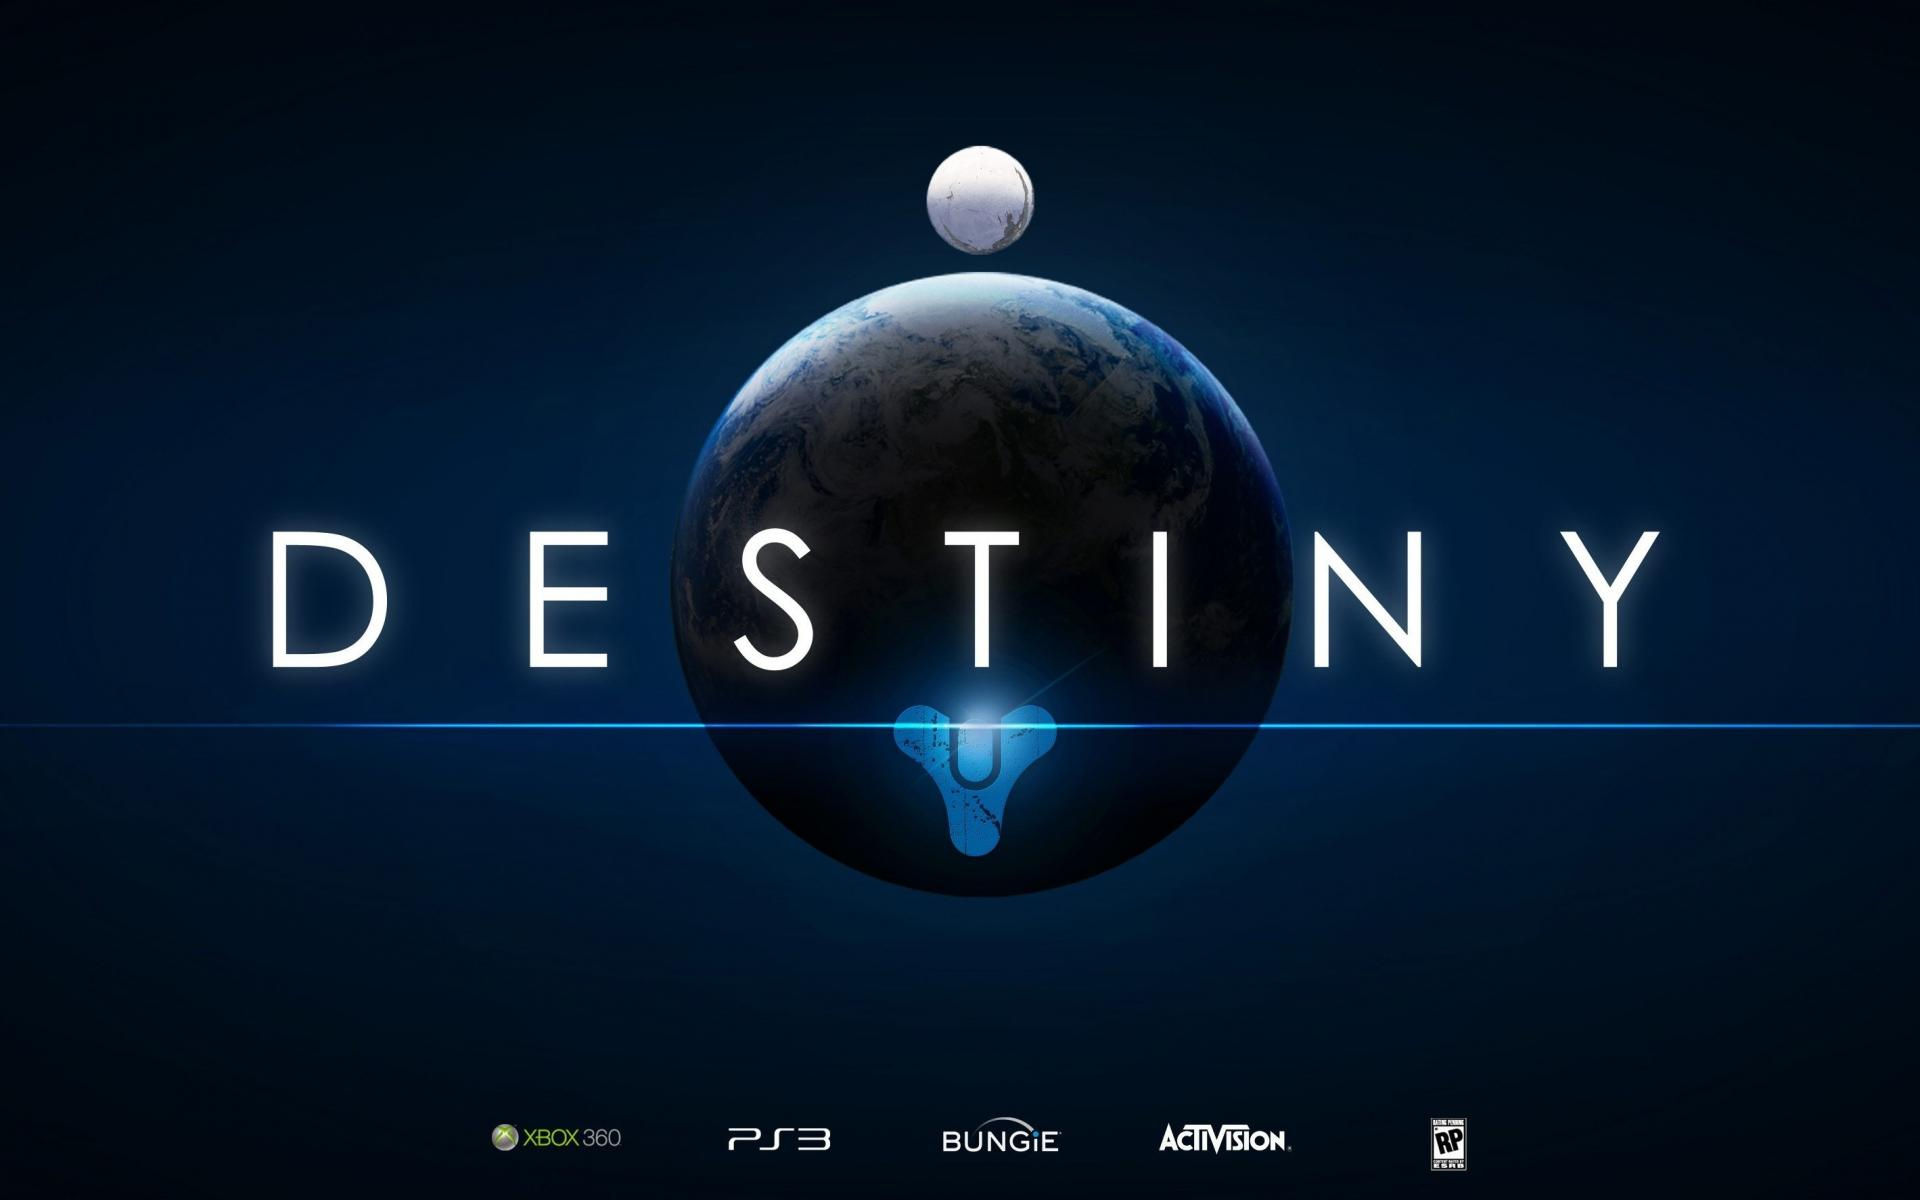 Destiny Themes for Xbox One : DestinyTheGame